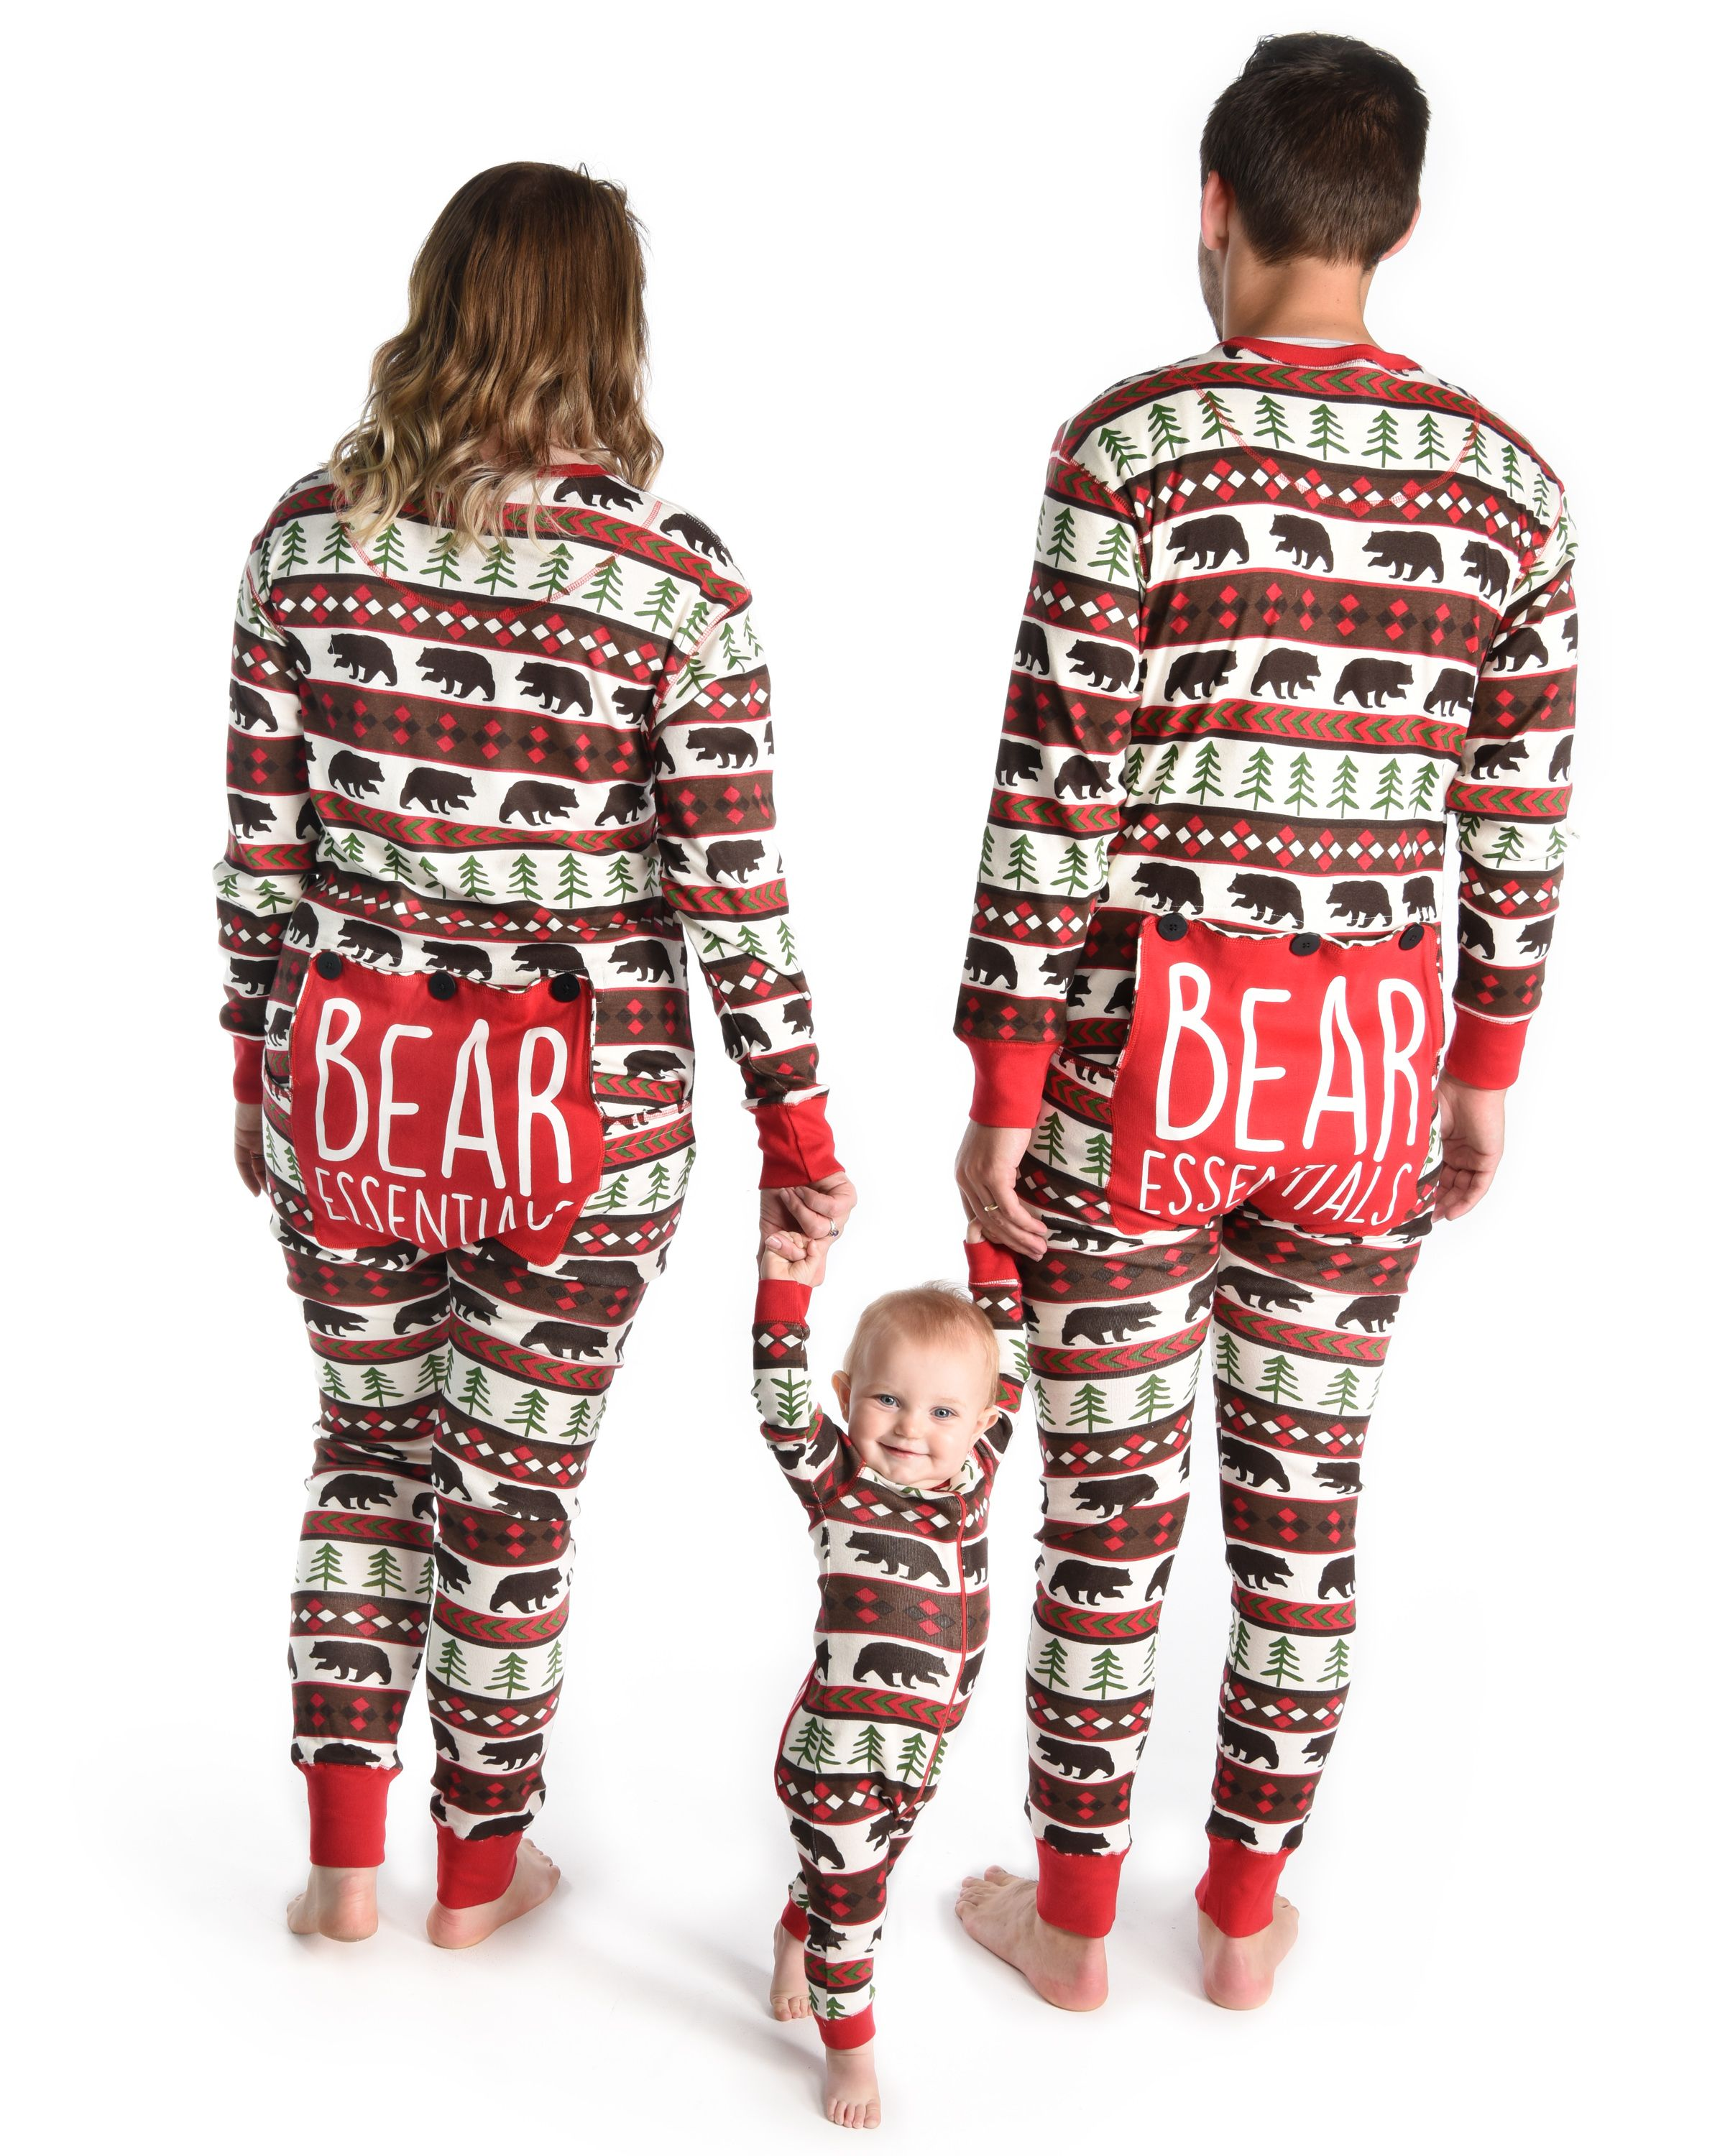 59309a4117d2 Matching Pajamas!!! Fun pajama sets for the whole family! Get together with  coordinating pjs for every men